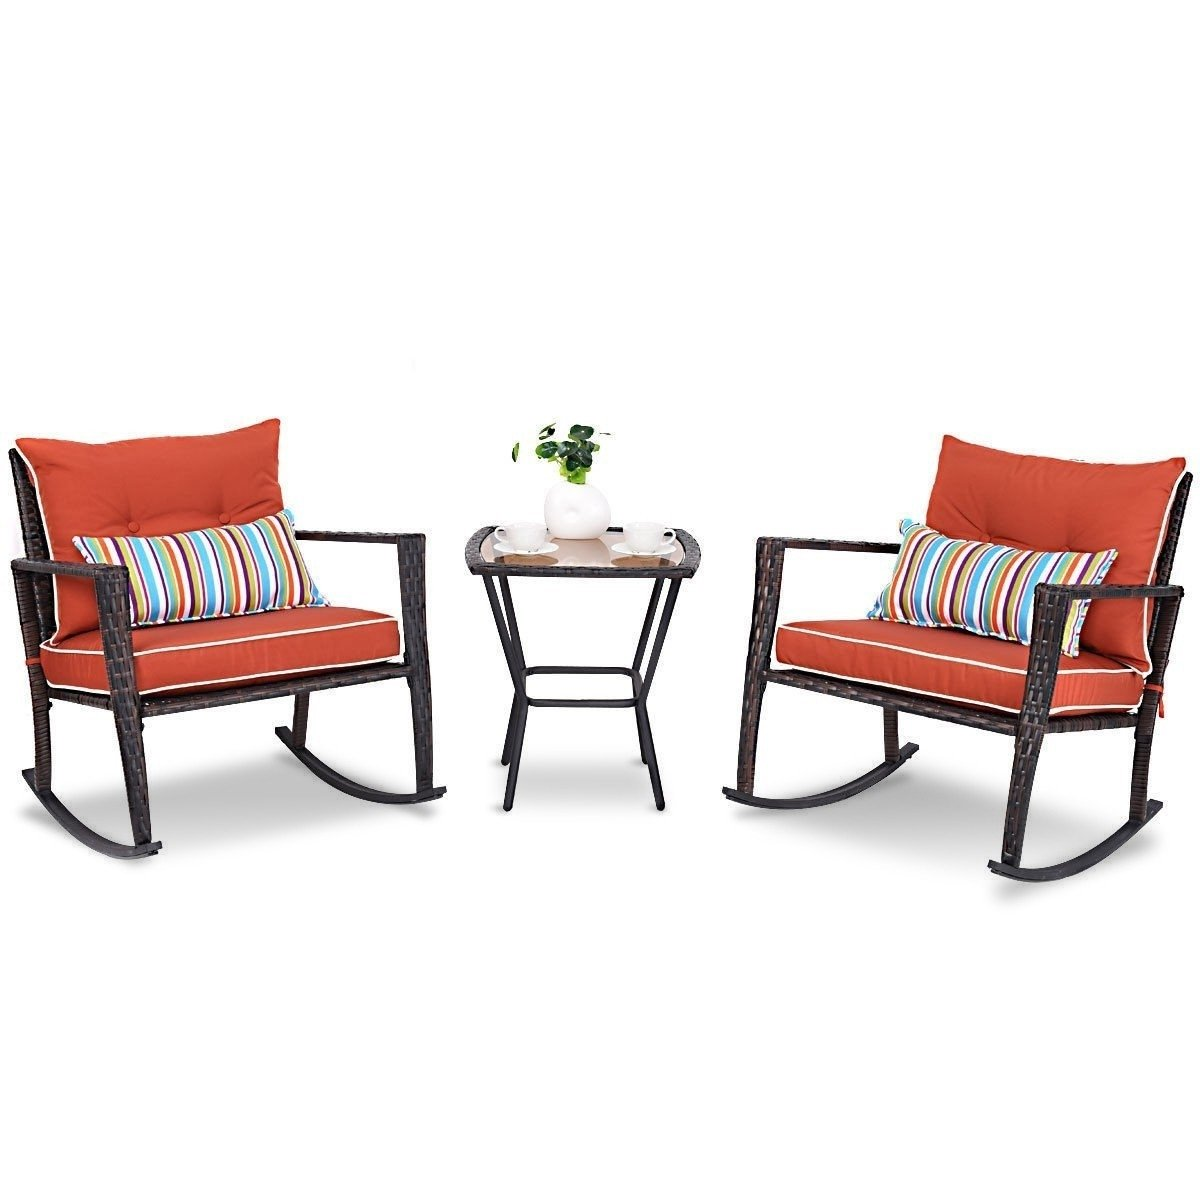 Outdoor 3-Piece Rattan Rocking Chairs and Table Set with Red Cushions